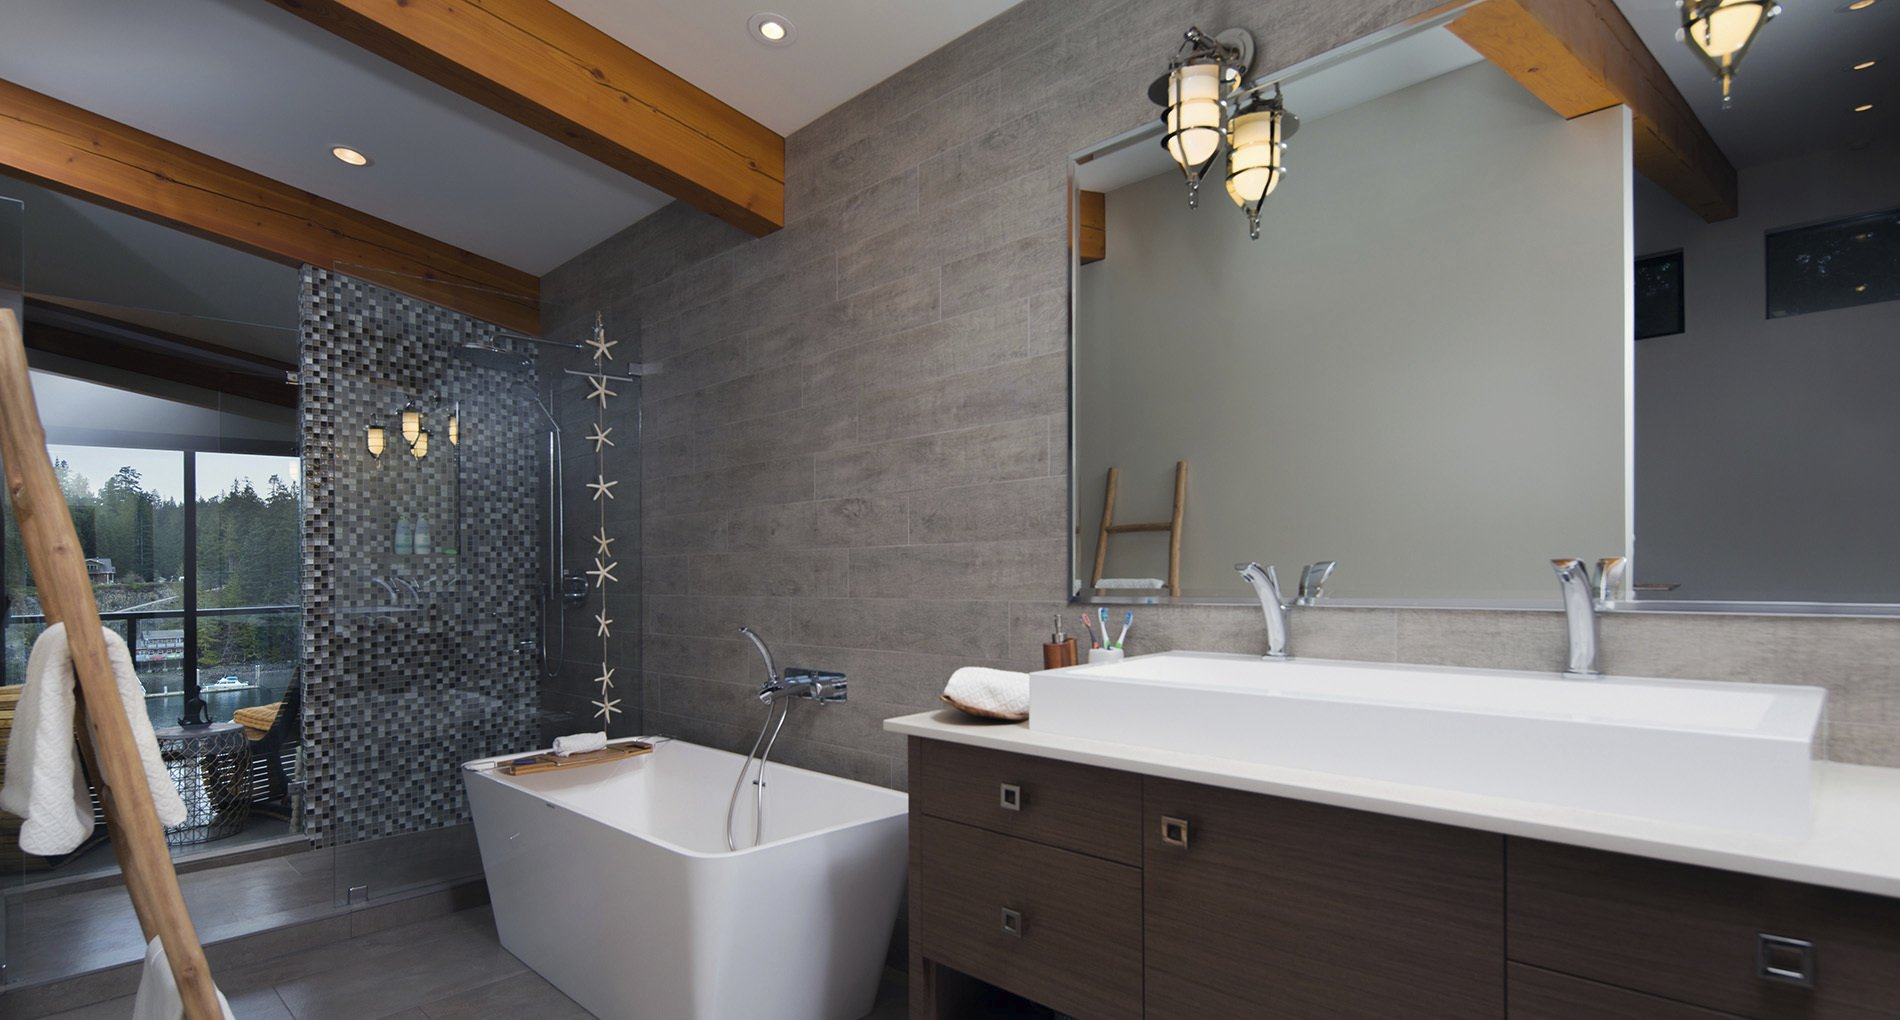 custom spa bathroom with destination tub glass dividers and wood accents